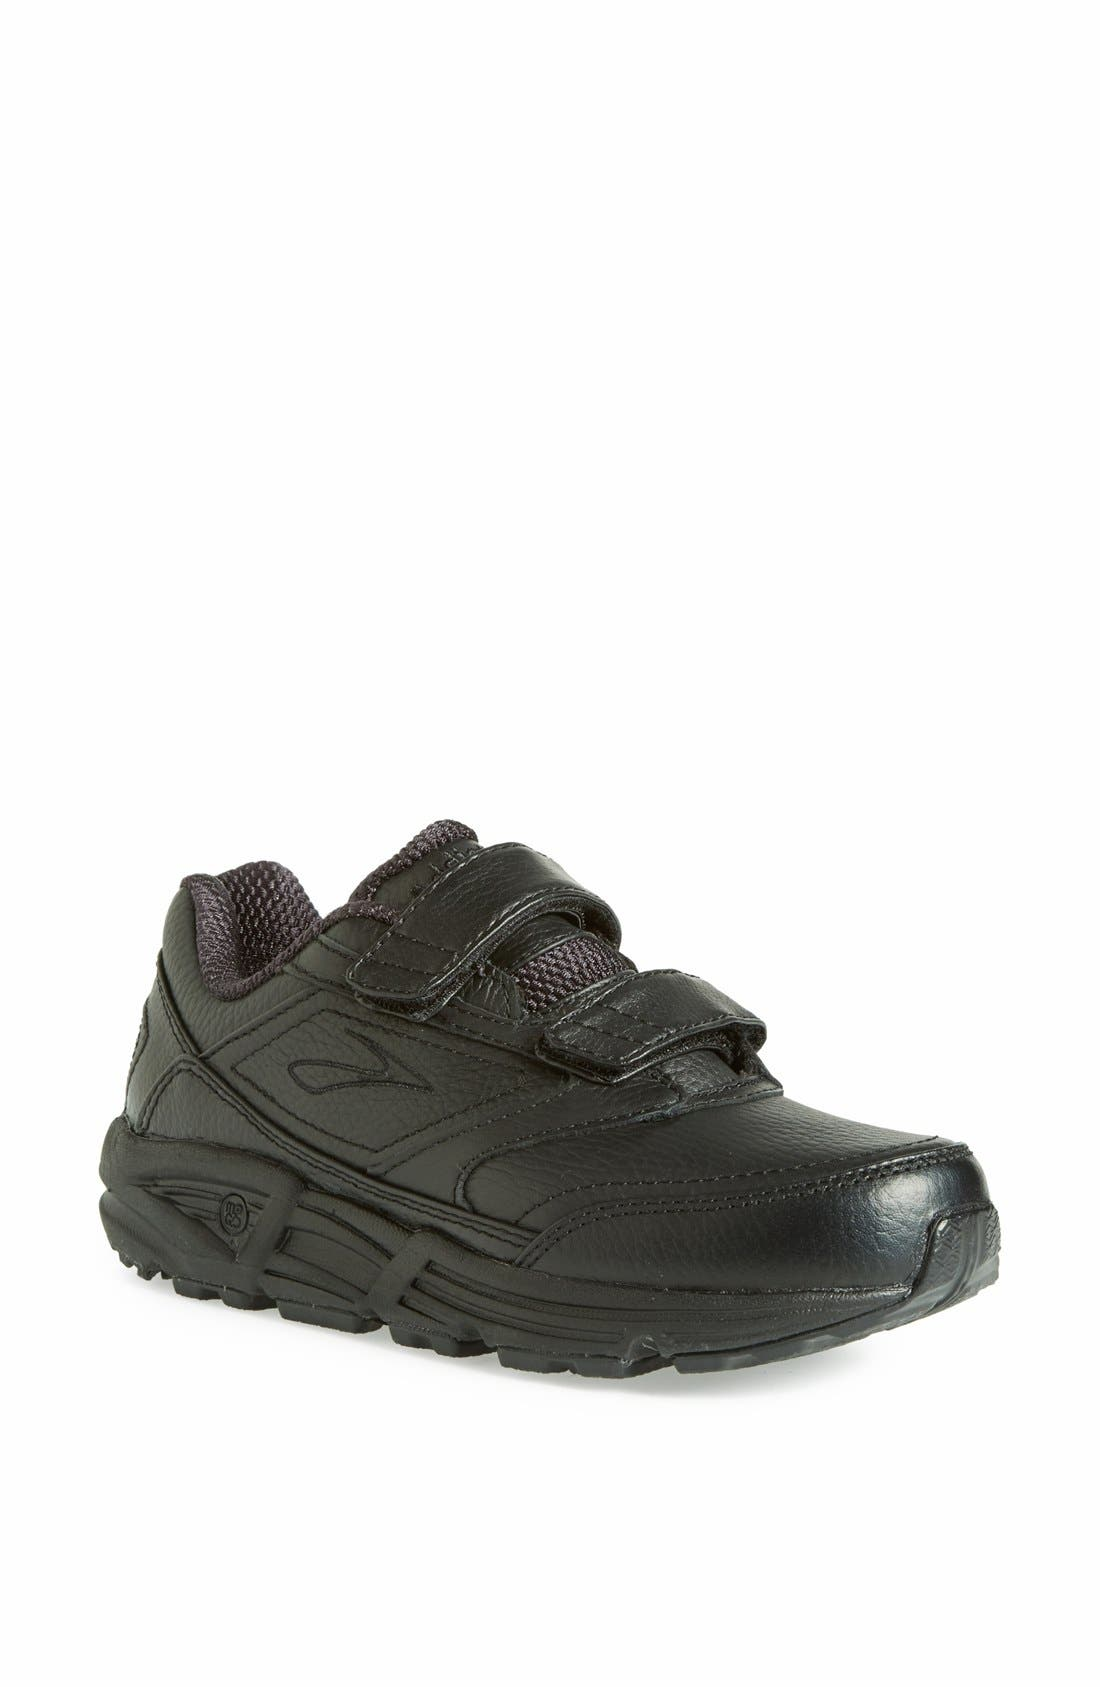 Alternate Image 1 Selected - Brooks 'Addiction' Walking Shoe (Women)